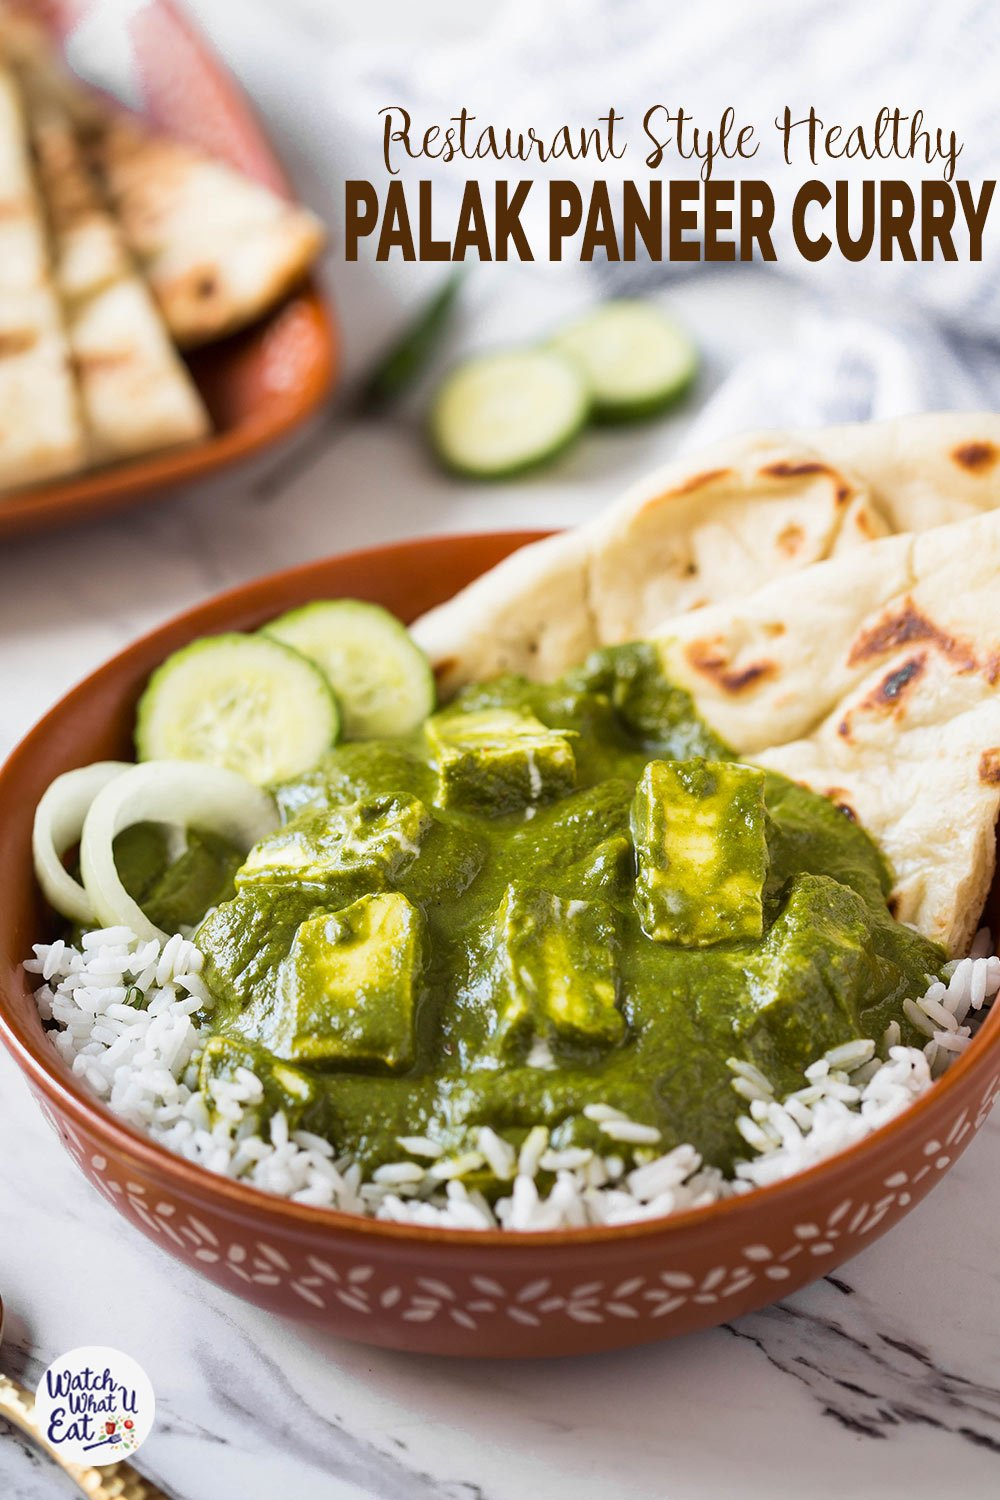 This restaurant-style creamy yet healthy palak paneer curry is super easy to prepare at home. Loaded with all authentic Indian flavors and it goes well with naan bread or plain basmati rice. | #watchwhatueat #palakpaneer #spinachrecipe #spinach #vegetarian